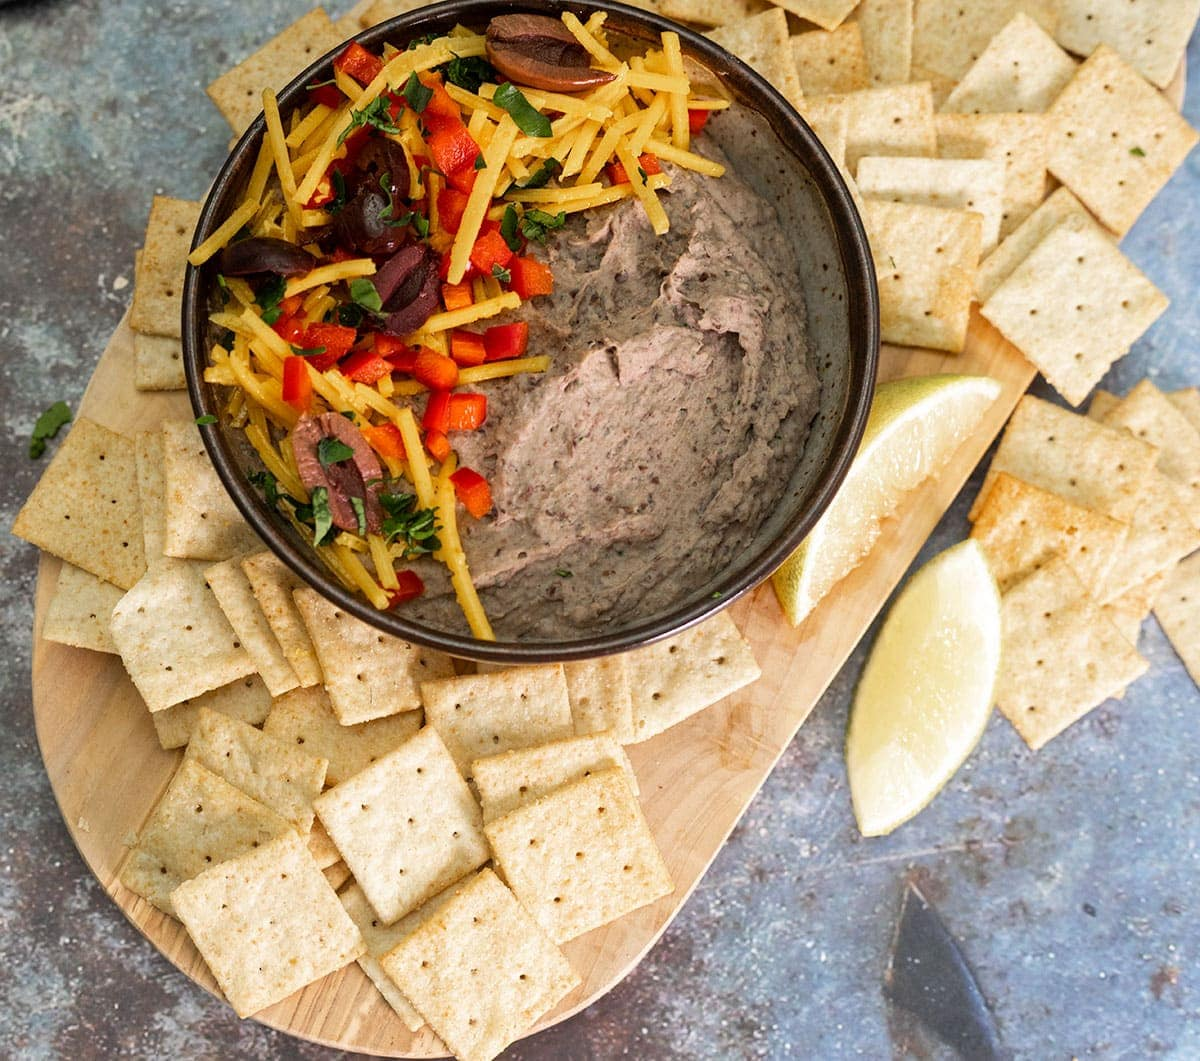 overlay black bean hummus in a brown bowl on a cutting board with crackers on a grey background